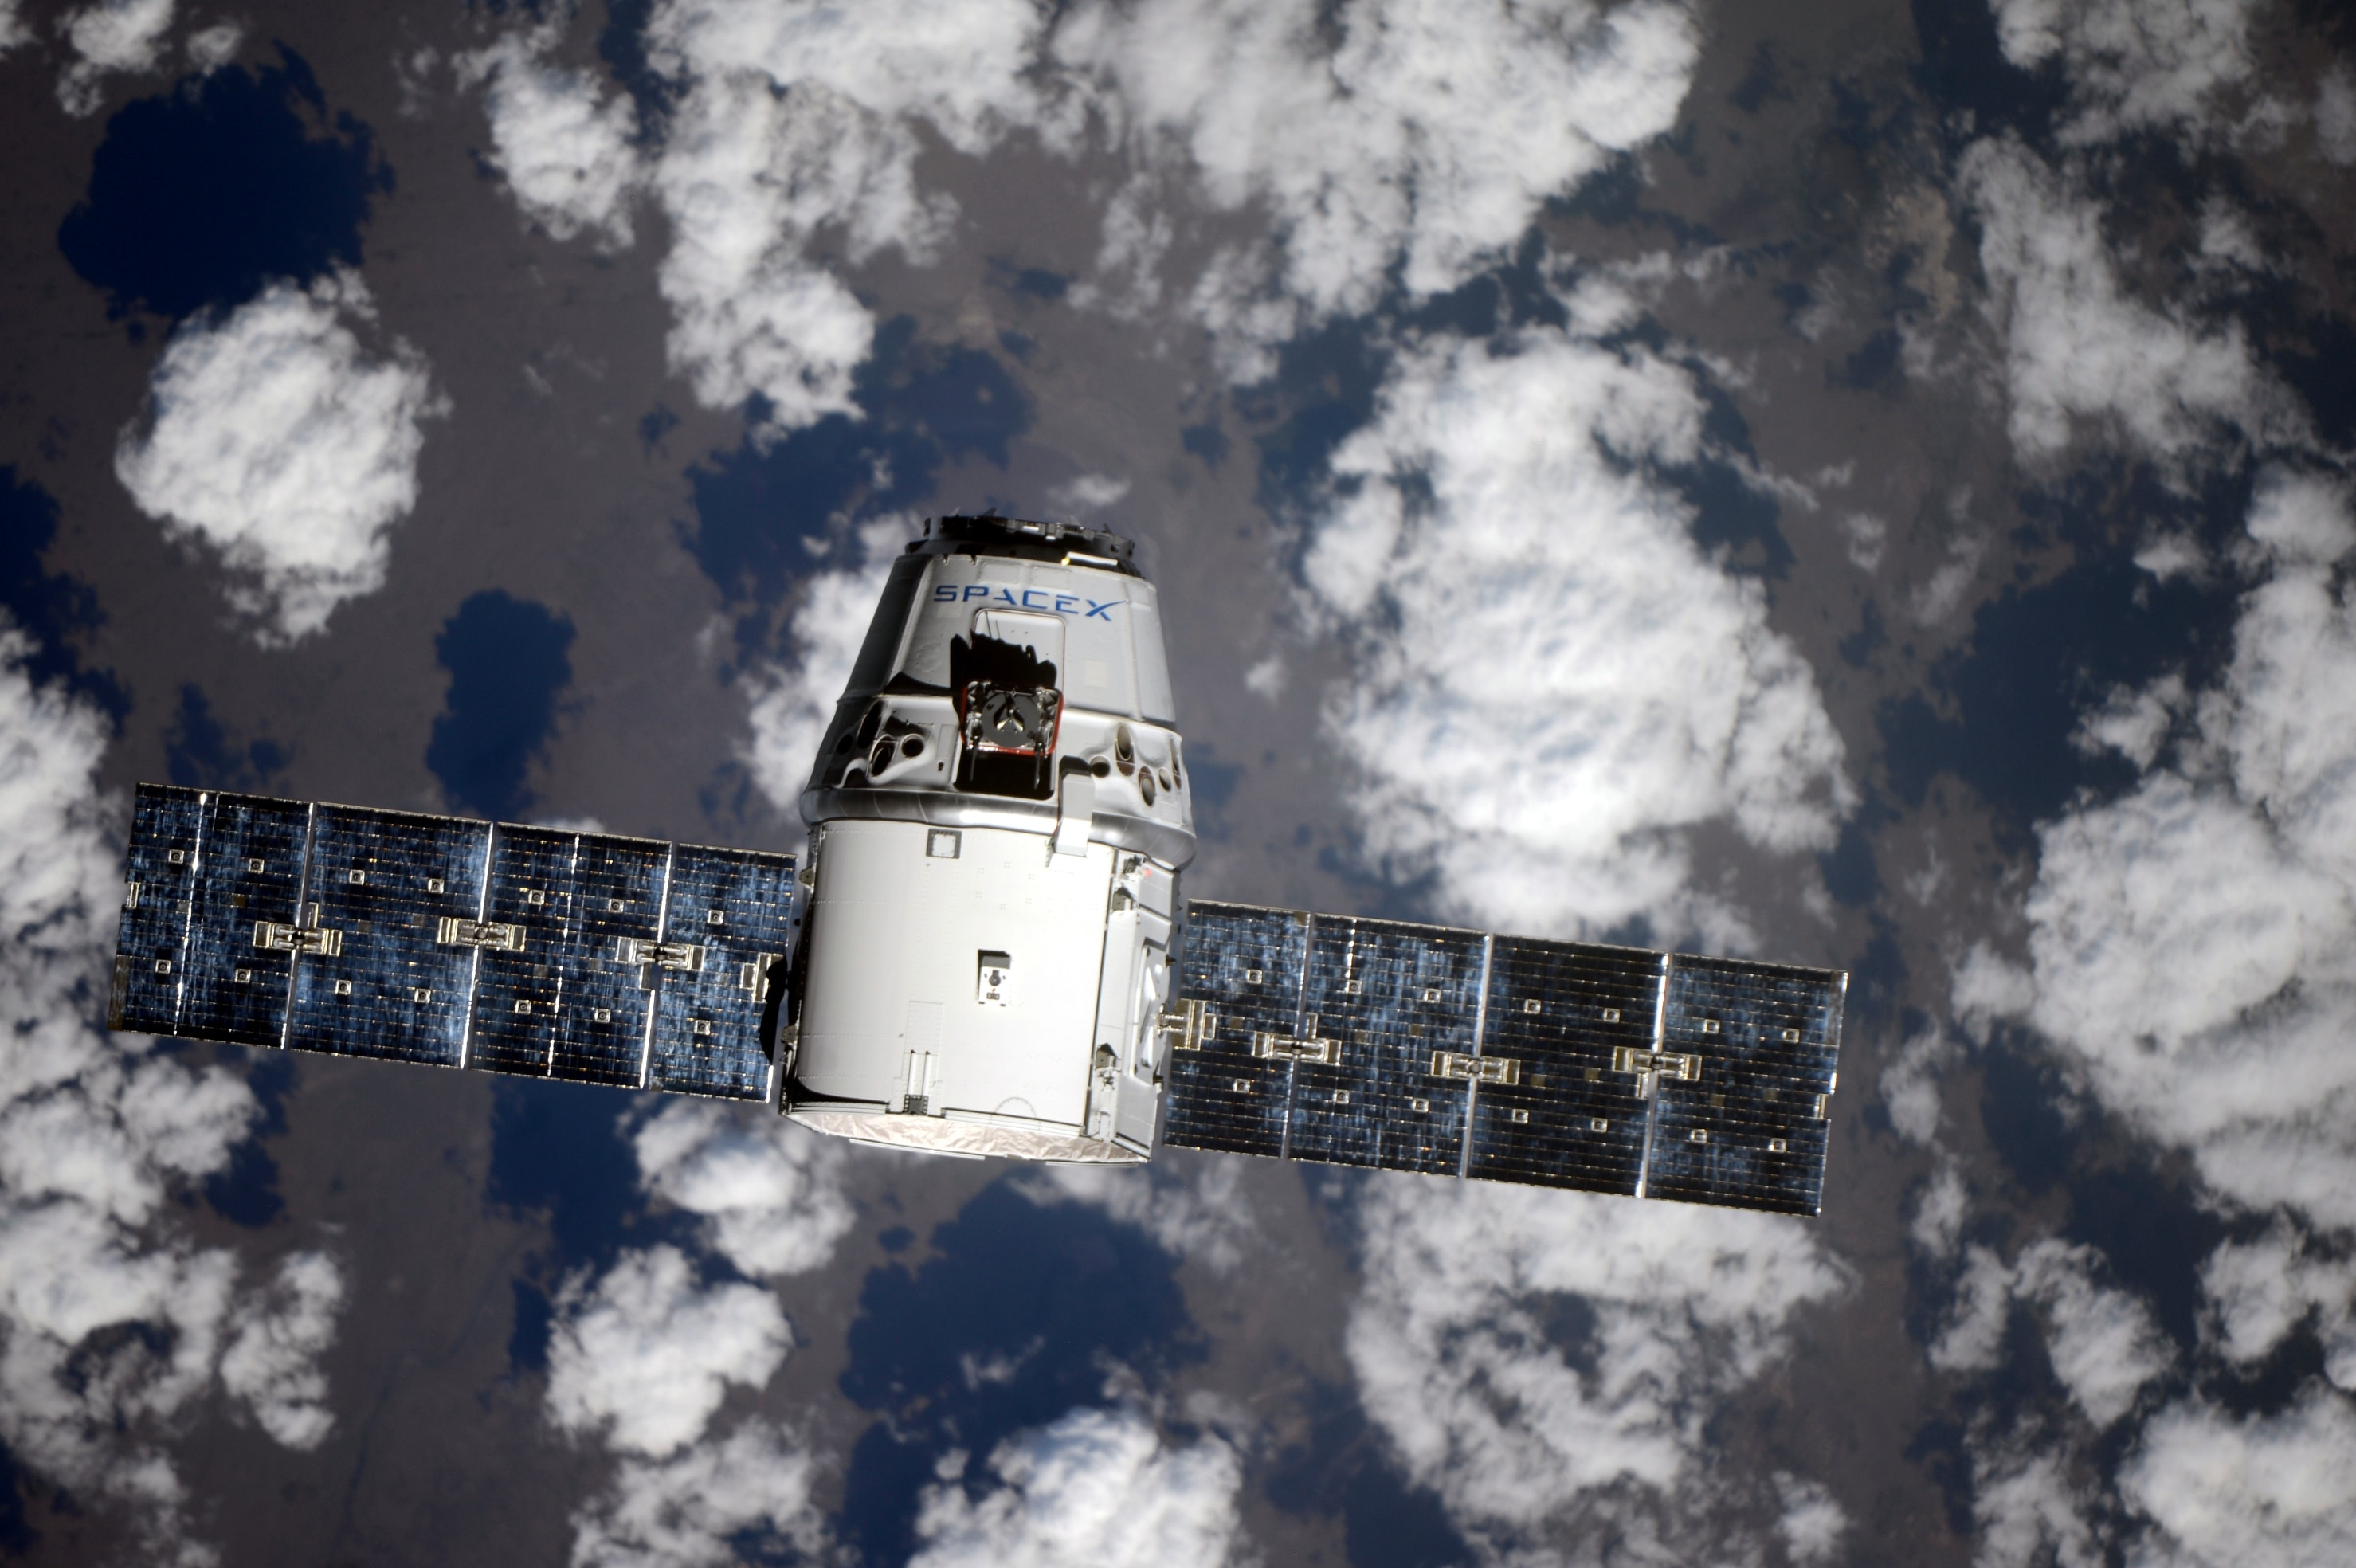 SpaceX CRS-12 success